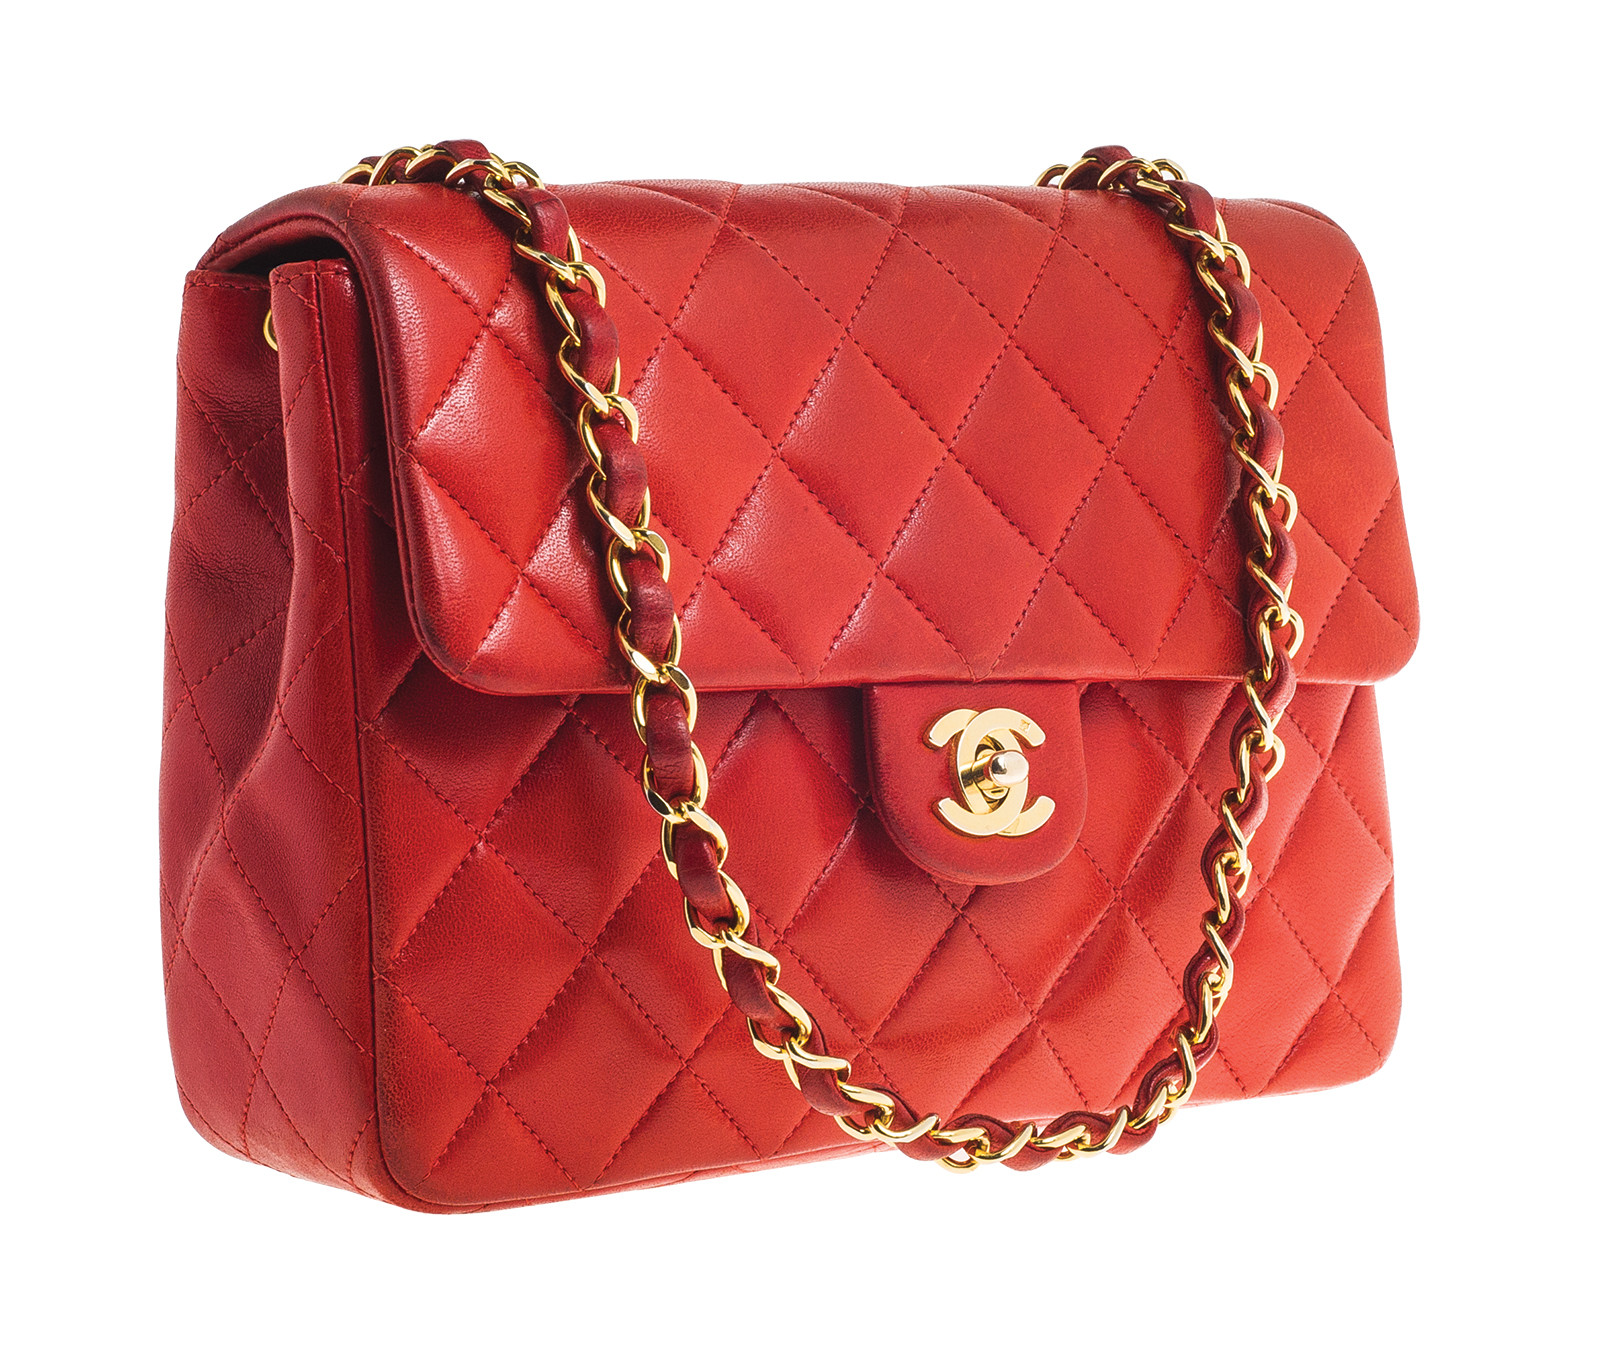 Vintage Lambskin Chanel Red Quilted Clutch Handbag